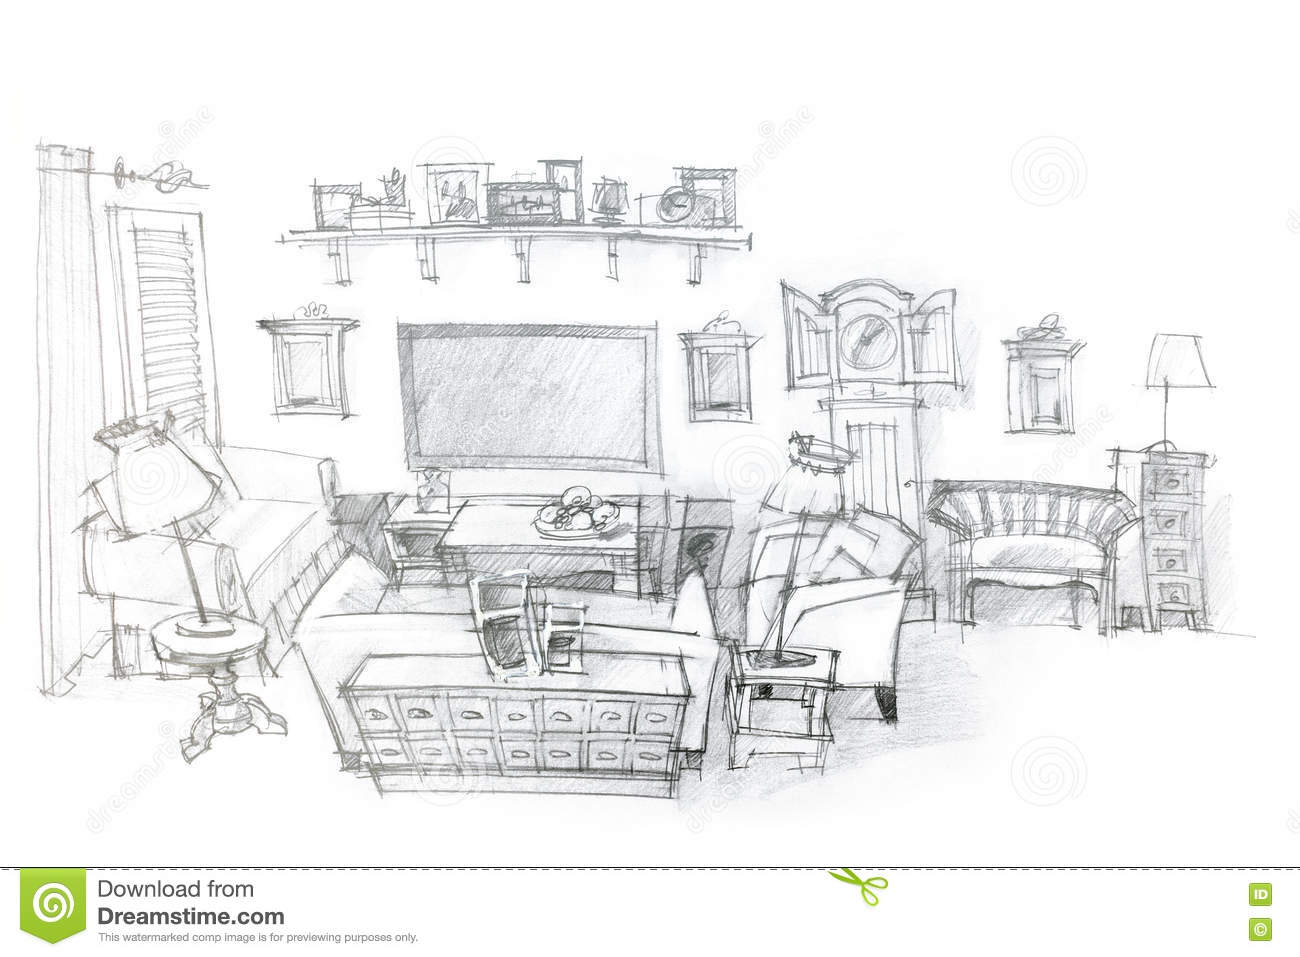 Architectural Hand Drawing Of Modern Living Room Interior